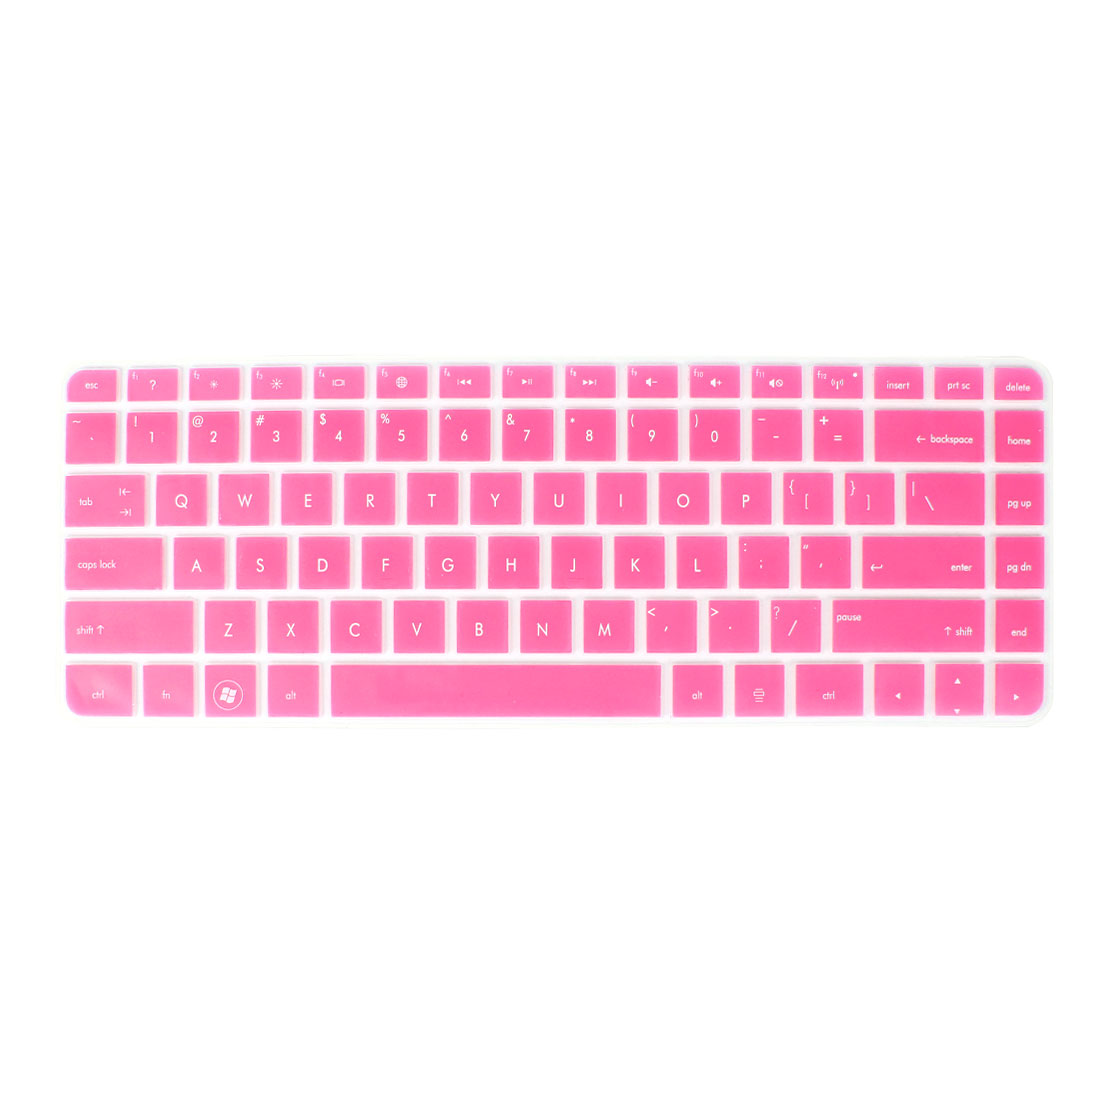 Laptop Keyboard Protector Film Pink Clear for HP Pavilion G4/431/430/DV4/4230S